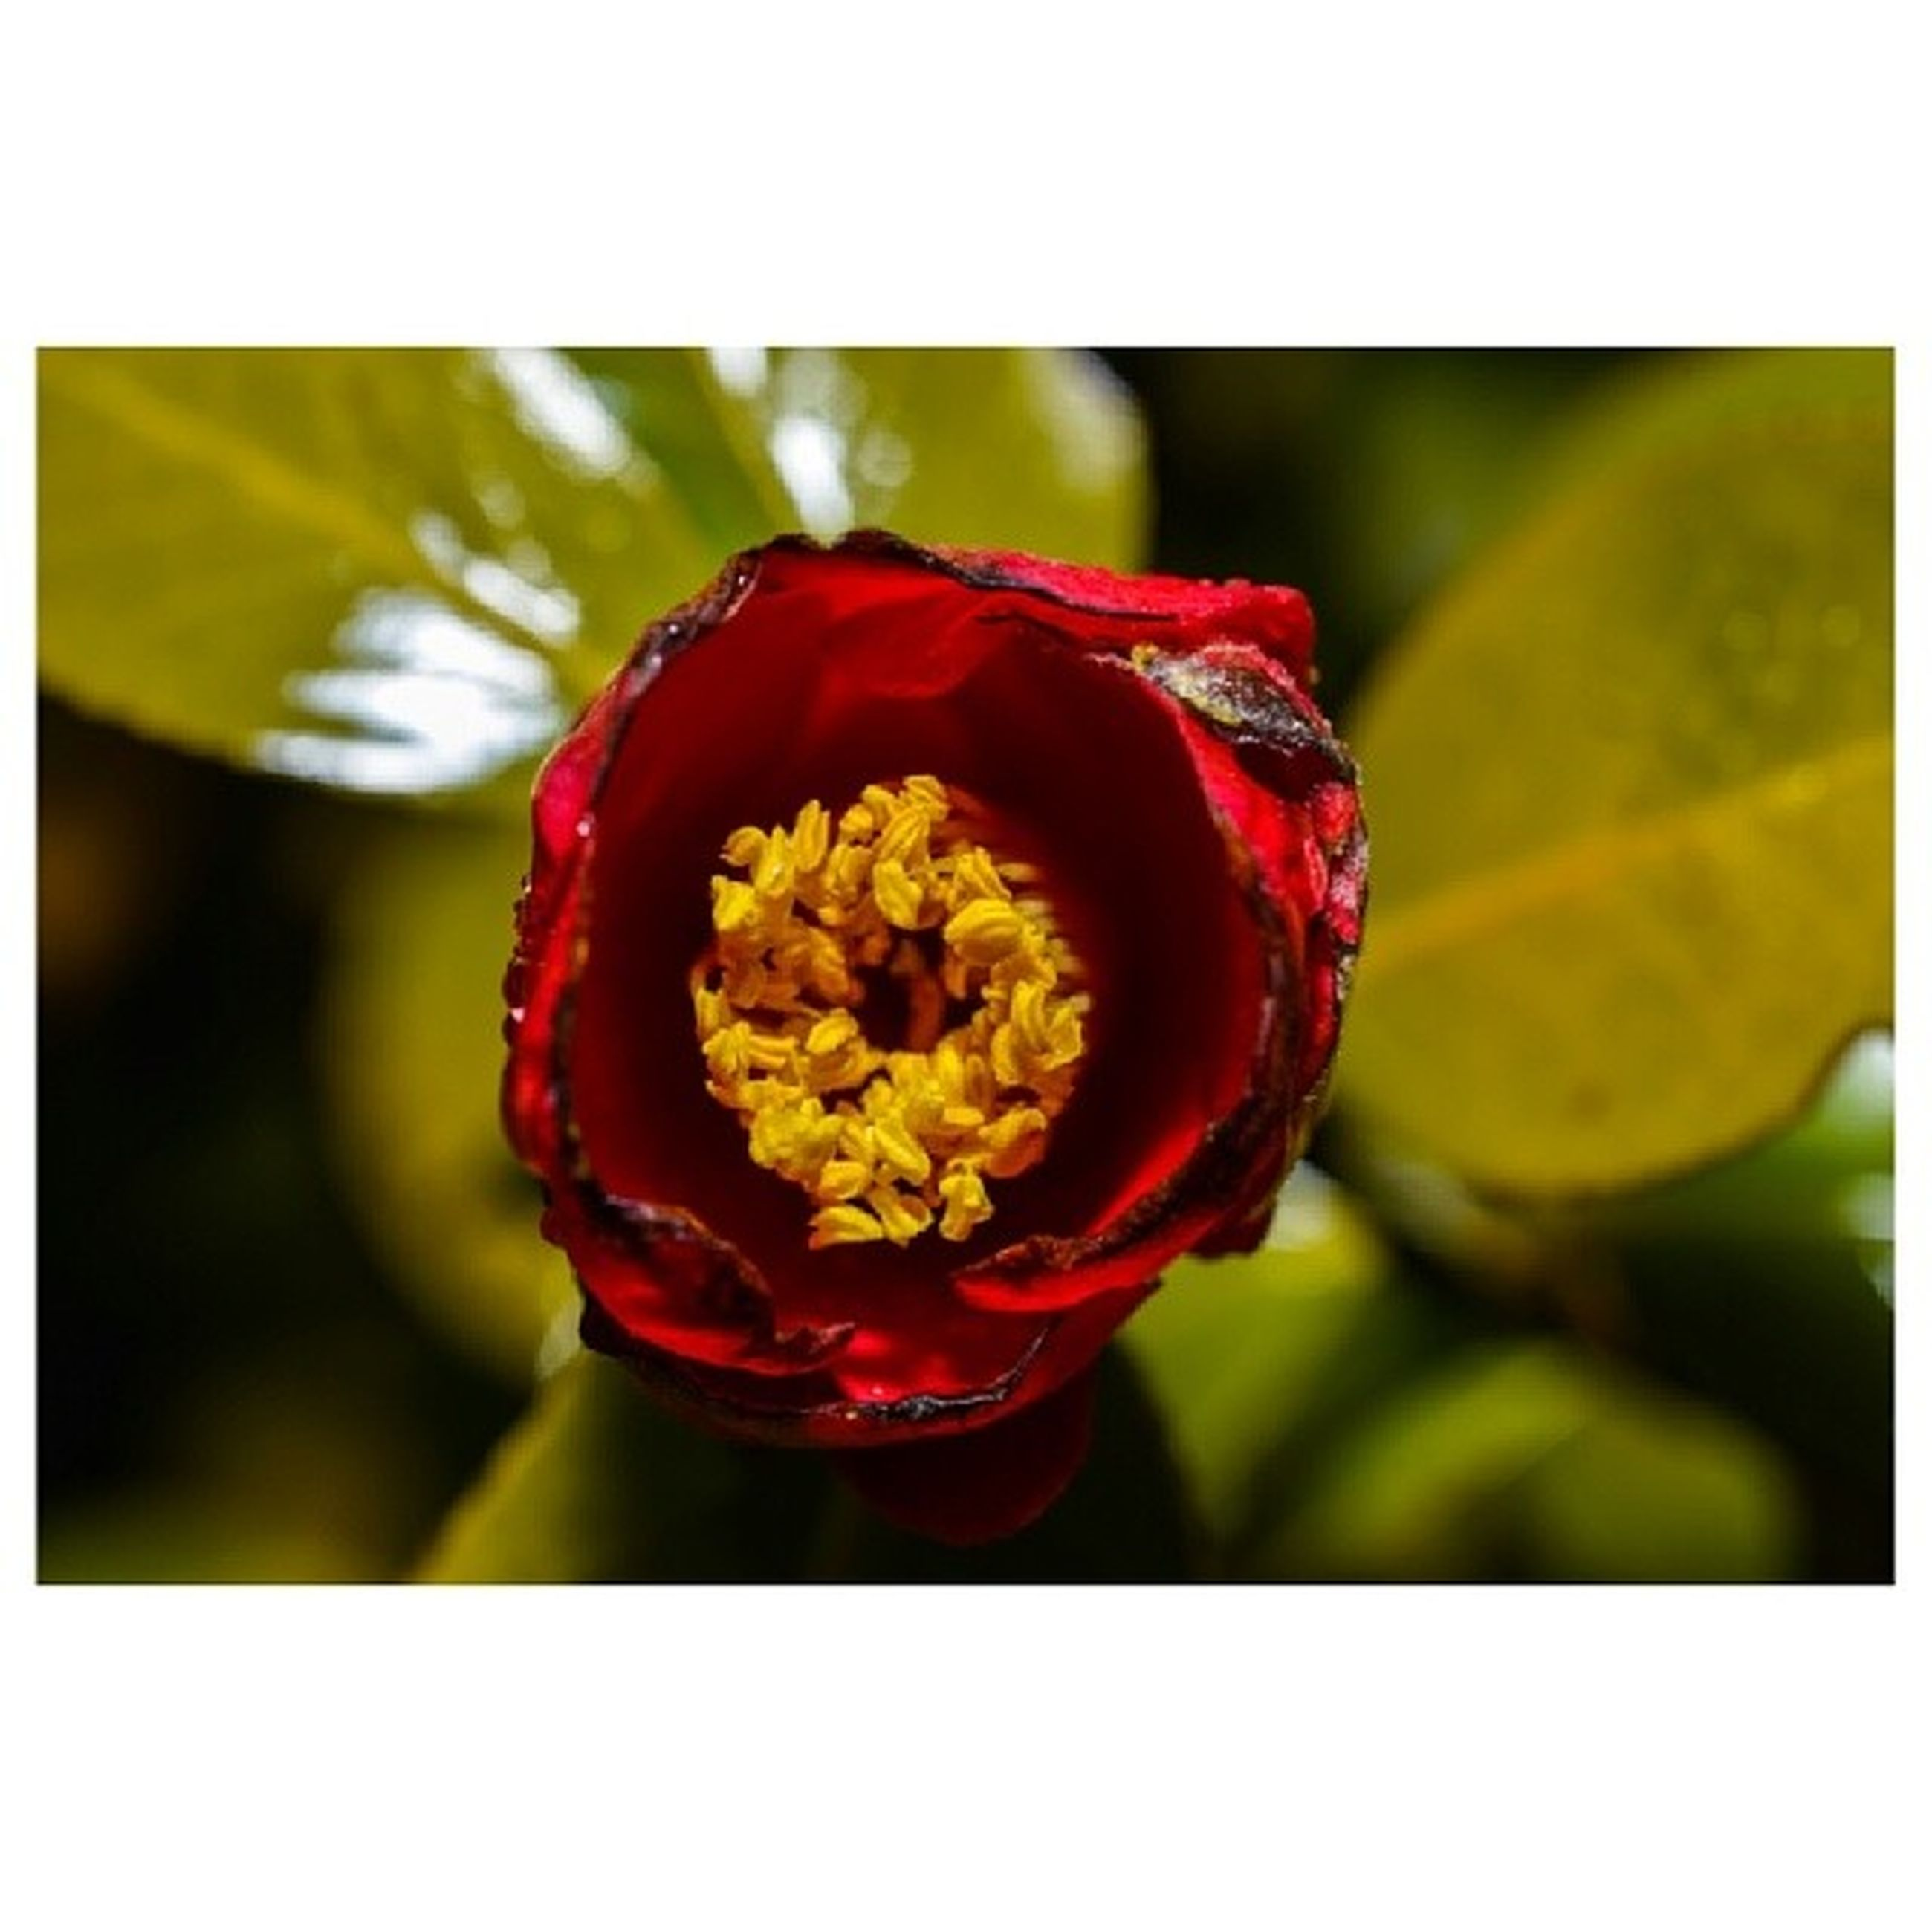 flower, petal, freshness, flower head, transfer print, fragility, close-up, beauty in nature, single flower, auto post production filter, growth, focus on foreground, blooming, red, nature, rose - flower, in bloom, blossom, plant, yellow